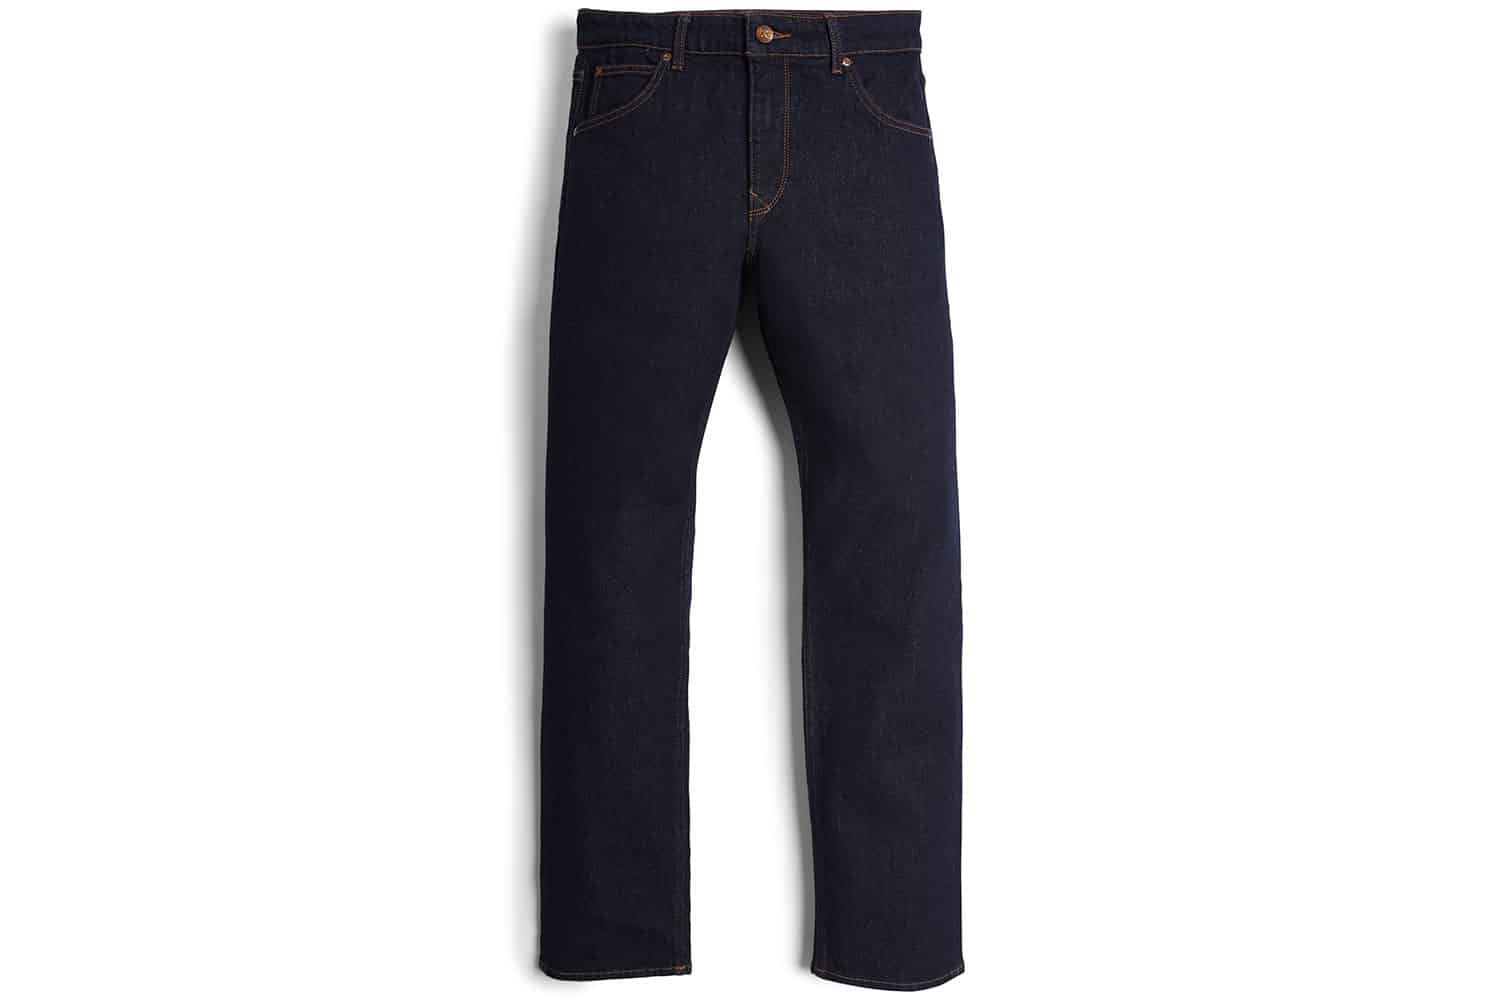 Editor's Pick: Lee Vintage Modern Selvedge Jean - Daily Front Row